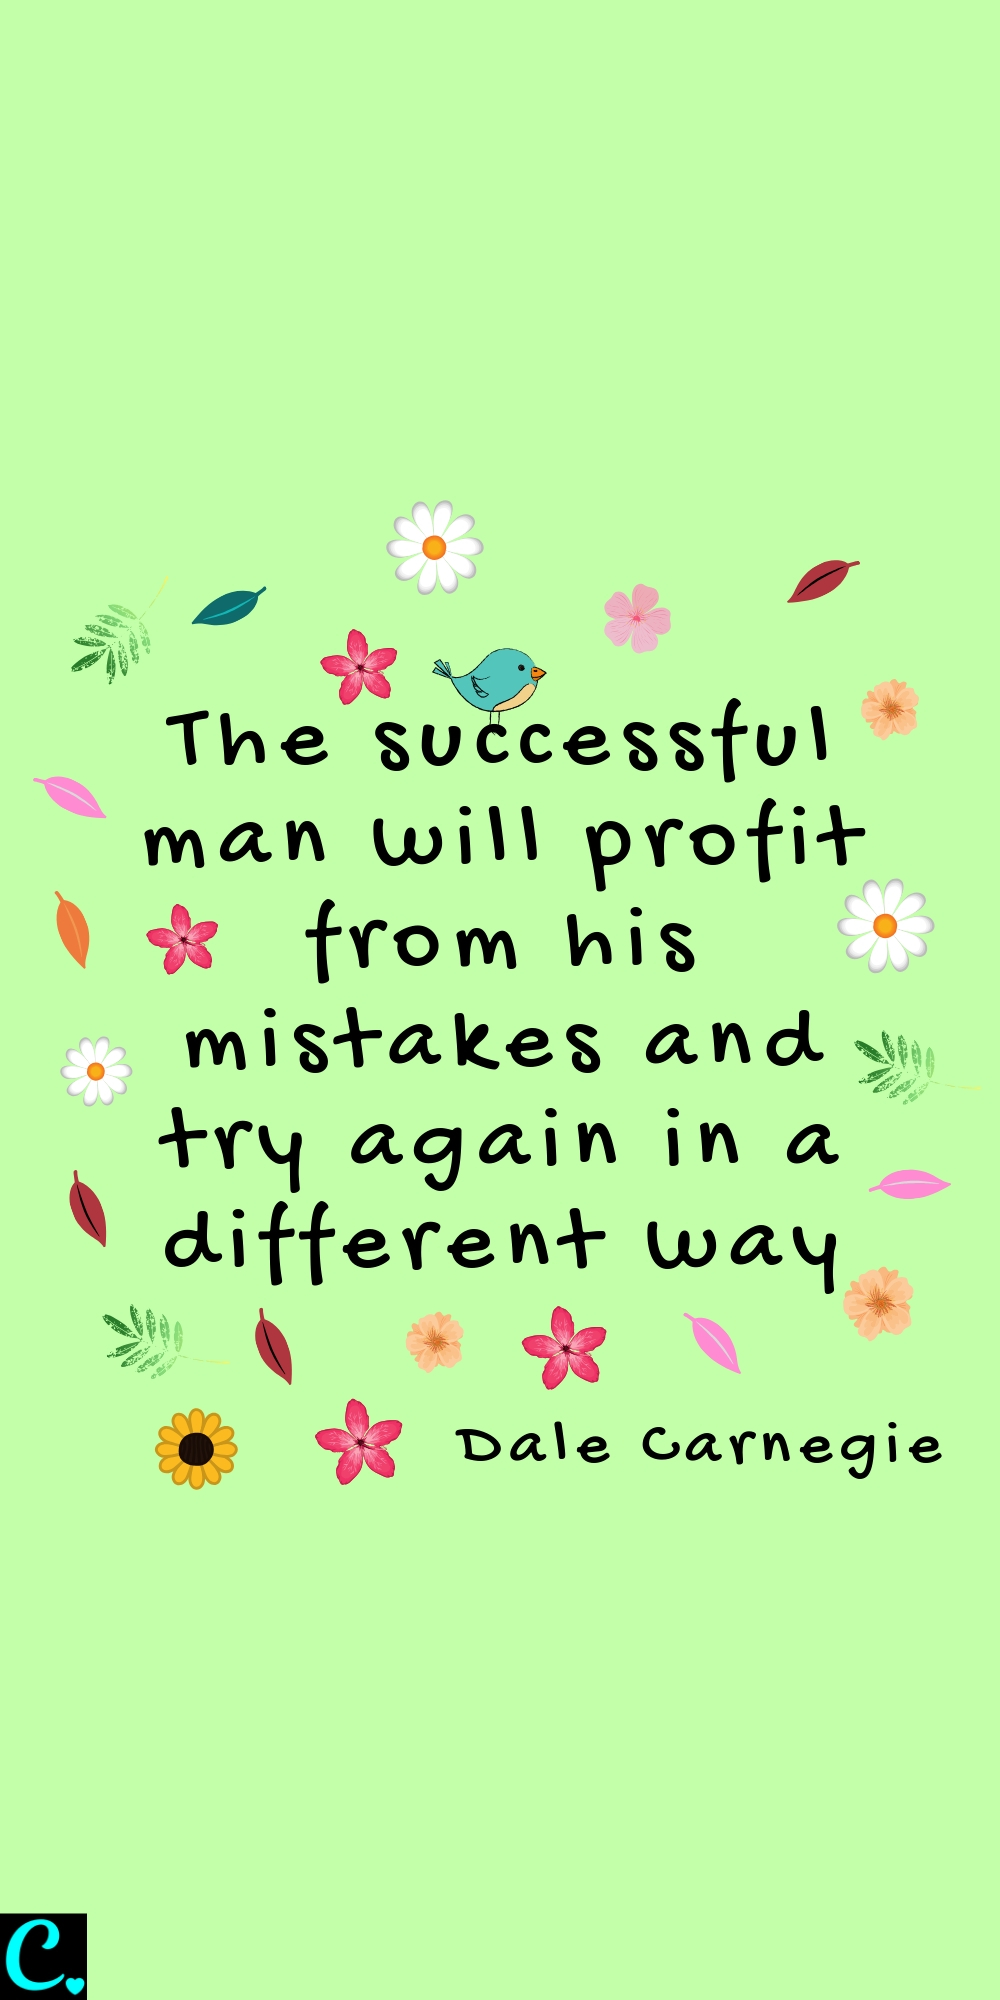 The successful man will profit from his mistakes and try again in a different way! Dale Carnegie quote about failure & success #successquote #failurequotes #failure #successquotes #successfulwomen